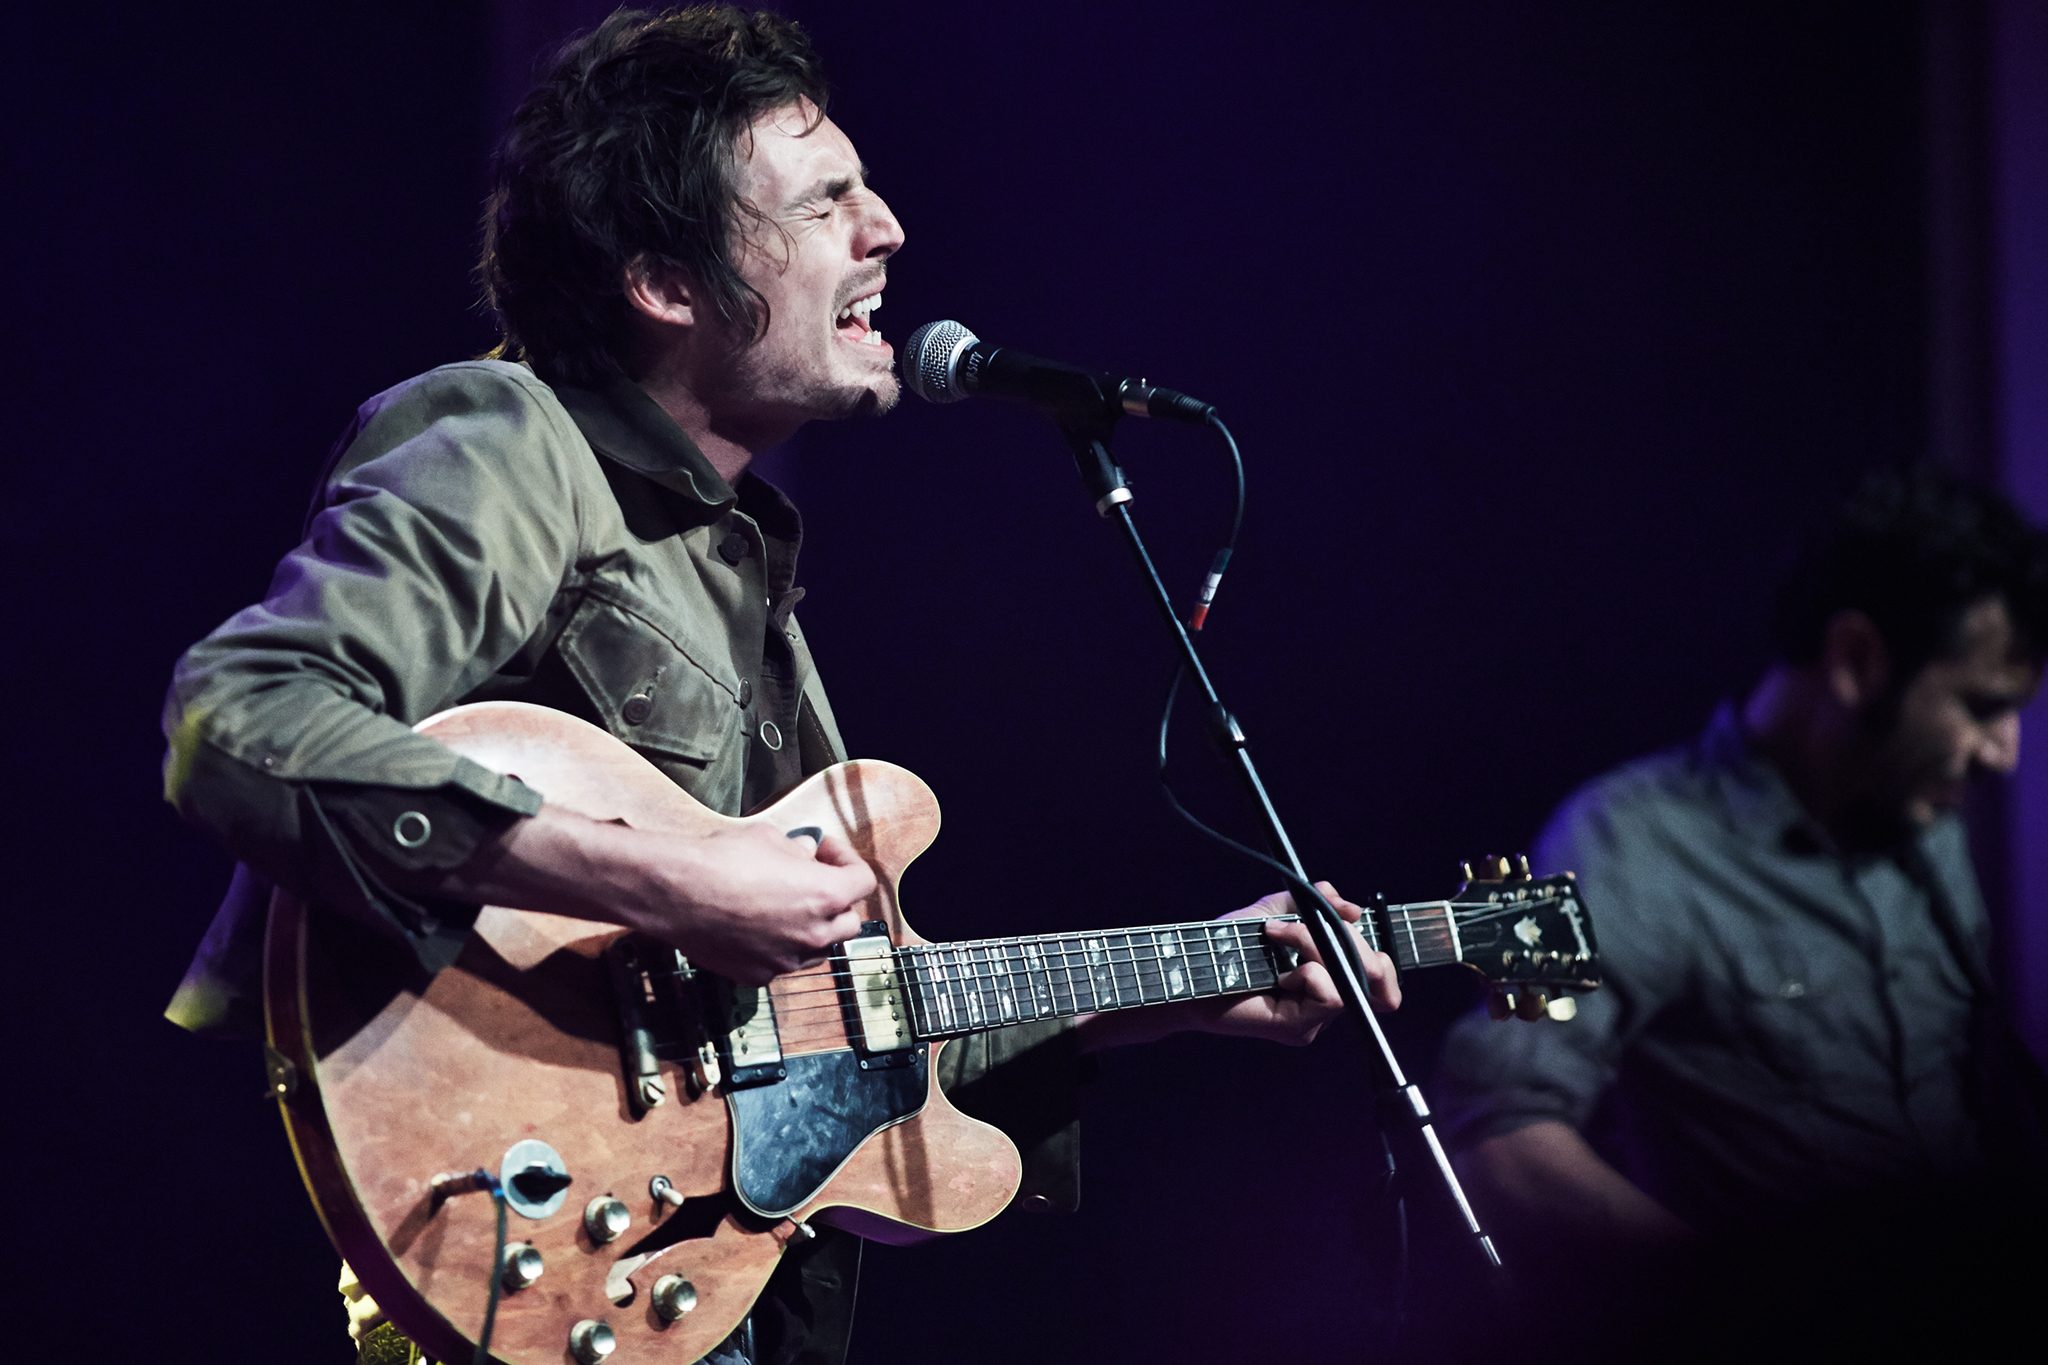 Augustana_At_The_Varsity_Theater_Minneapolis_2014_Photo_By_Joe_Lemke_19.JPG